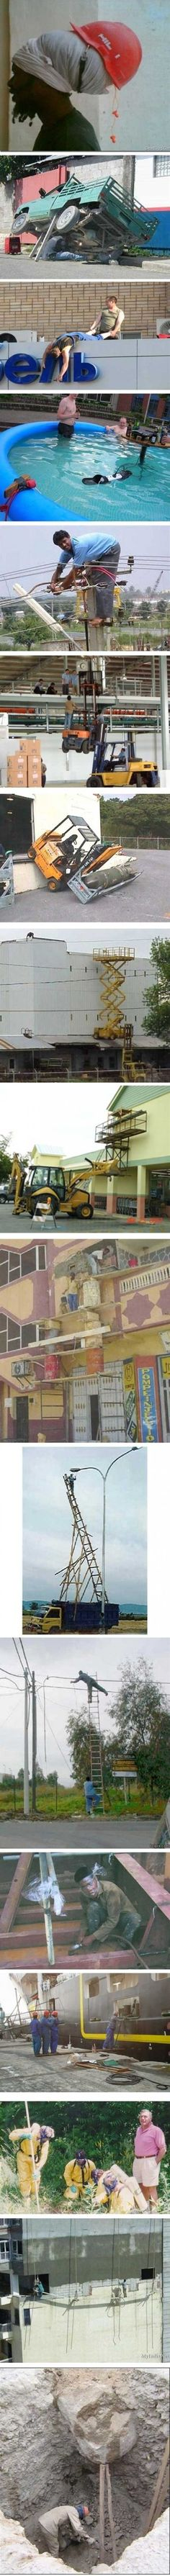 Safety First ! - funny pictures - funny photos - funny images - funny pics - funny quotes - funny animals @ humor